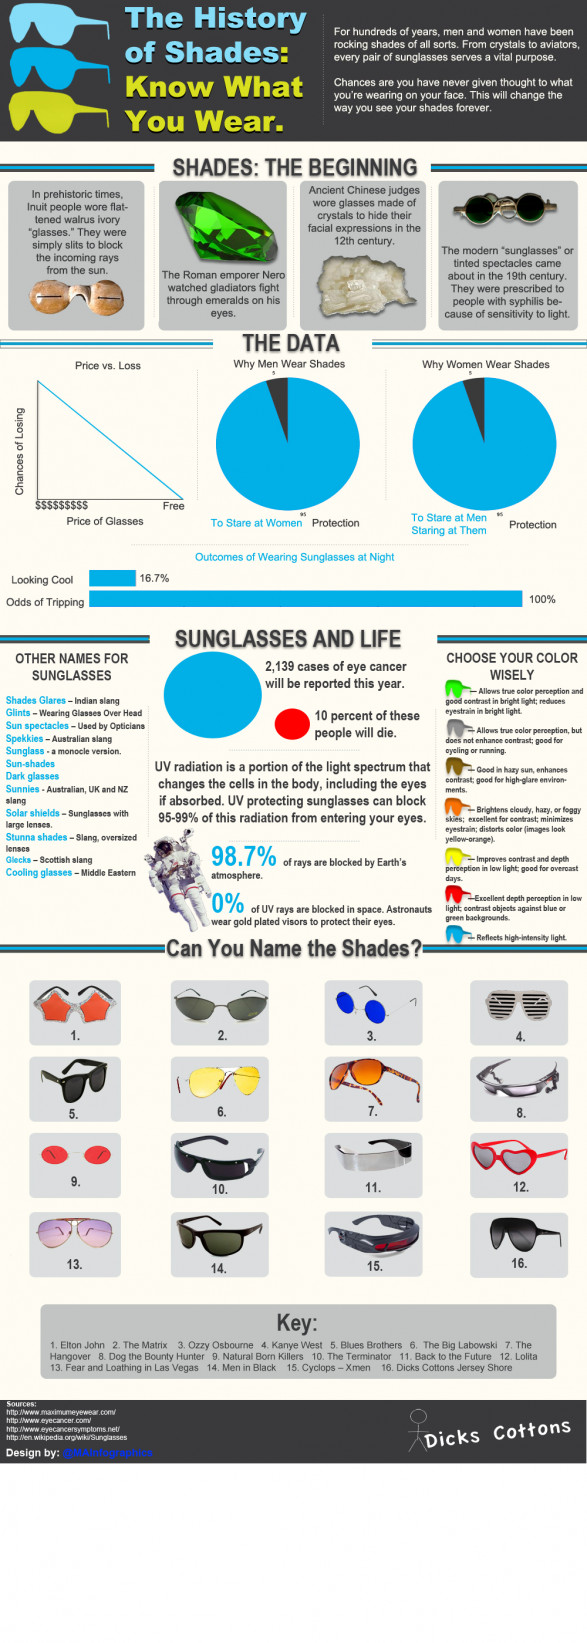 The History of Sunglasses: Know What You Wear